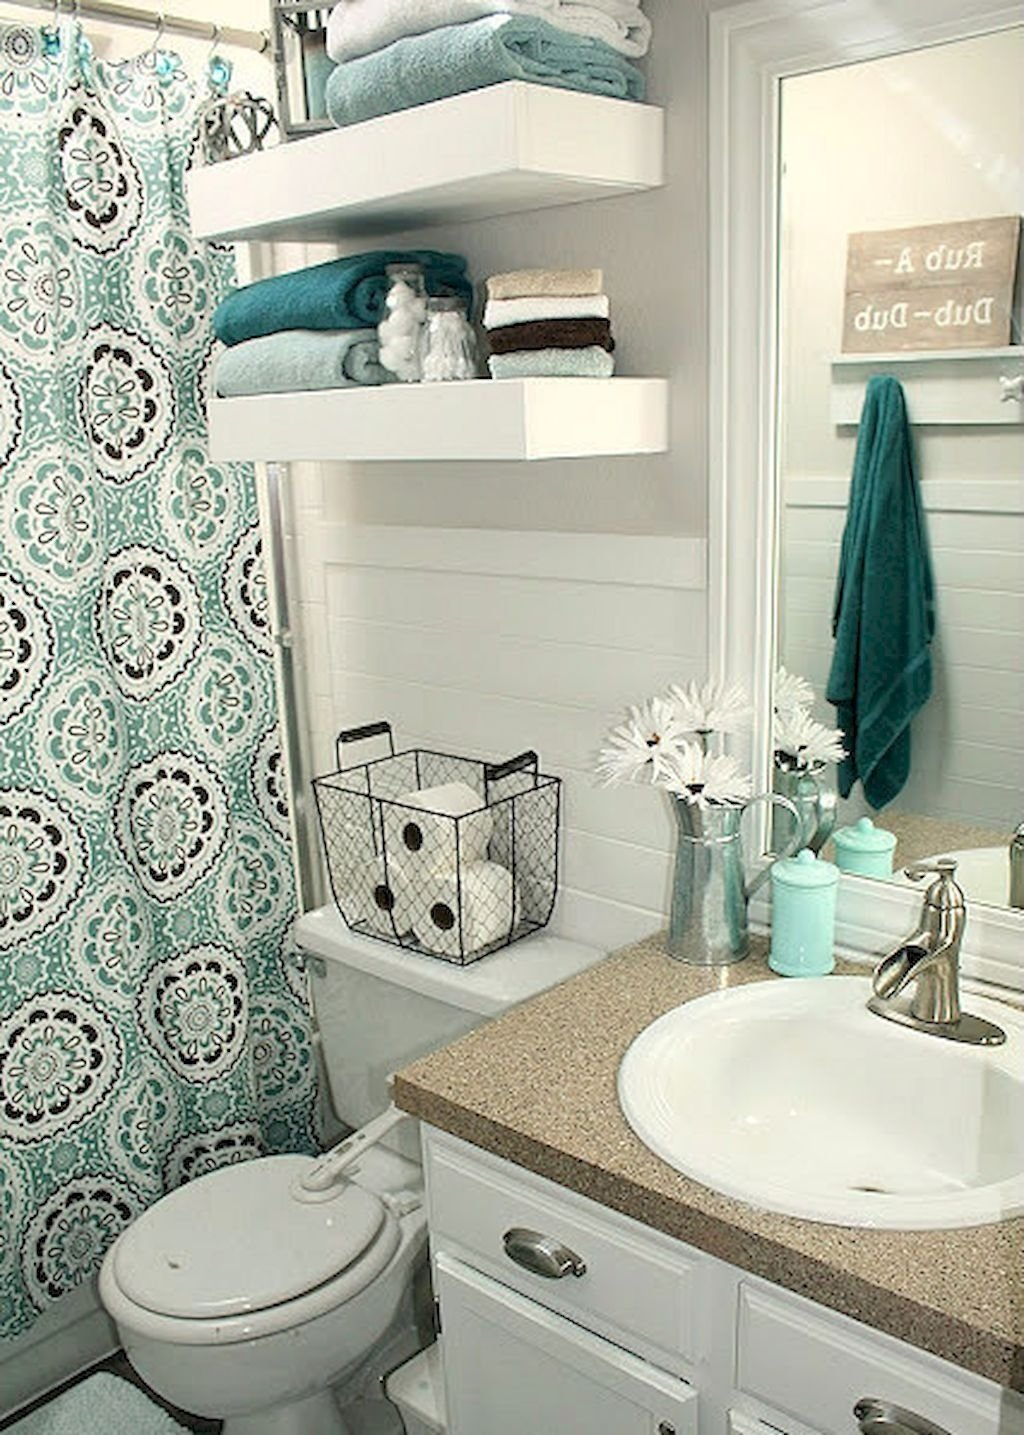 30 diy small apartment decorating ideas on a budget   apartments